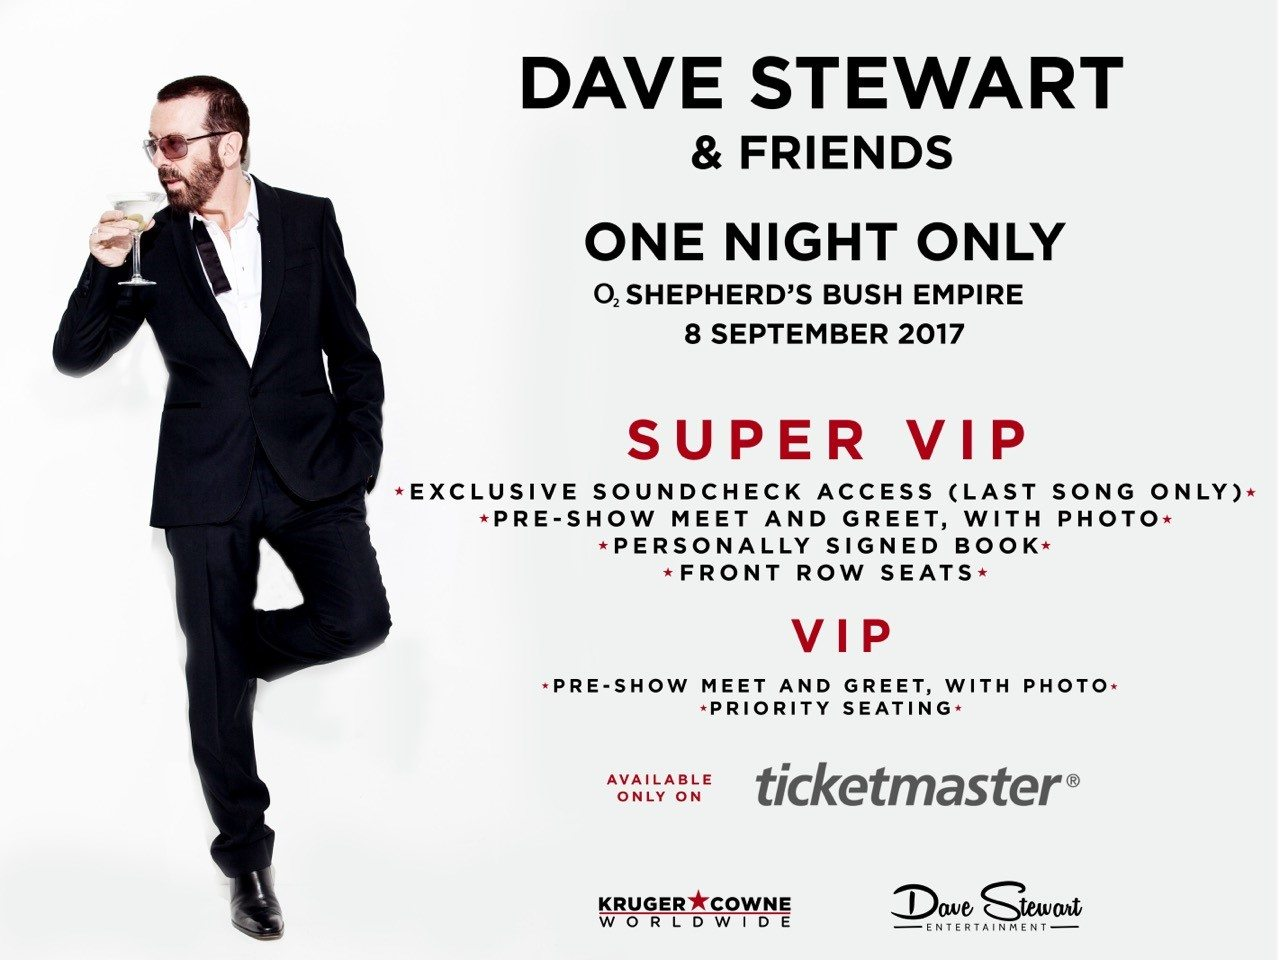 Vip Meet Greet And Sound Check Tickets Are Available For Dave